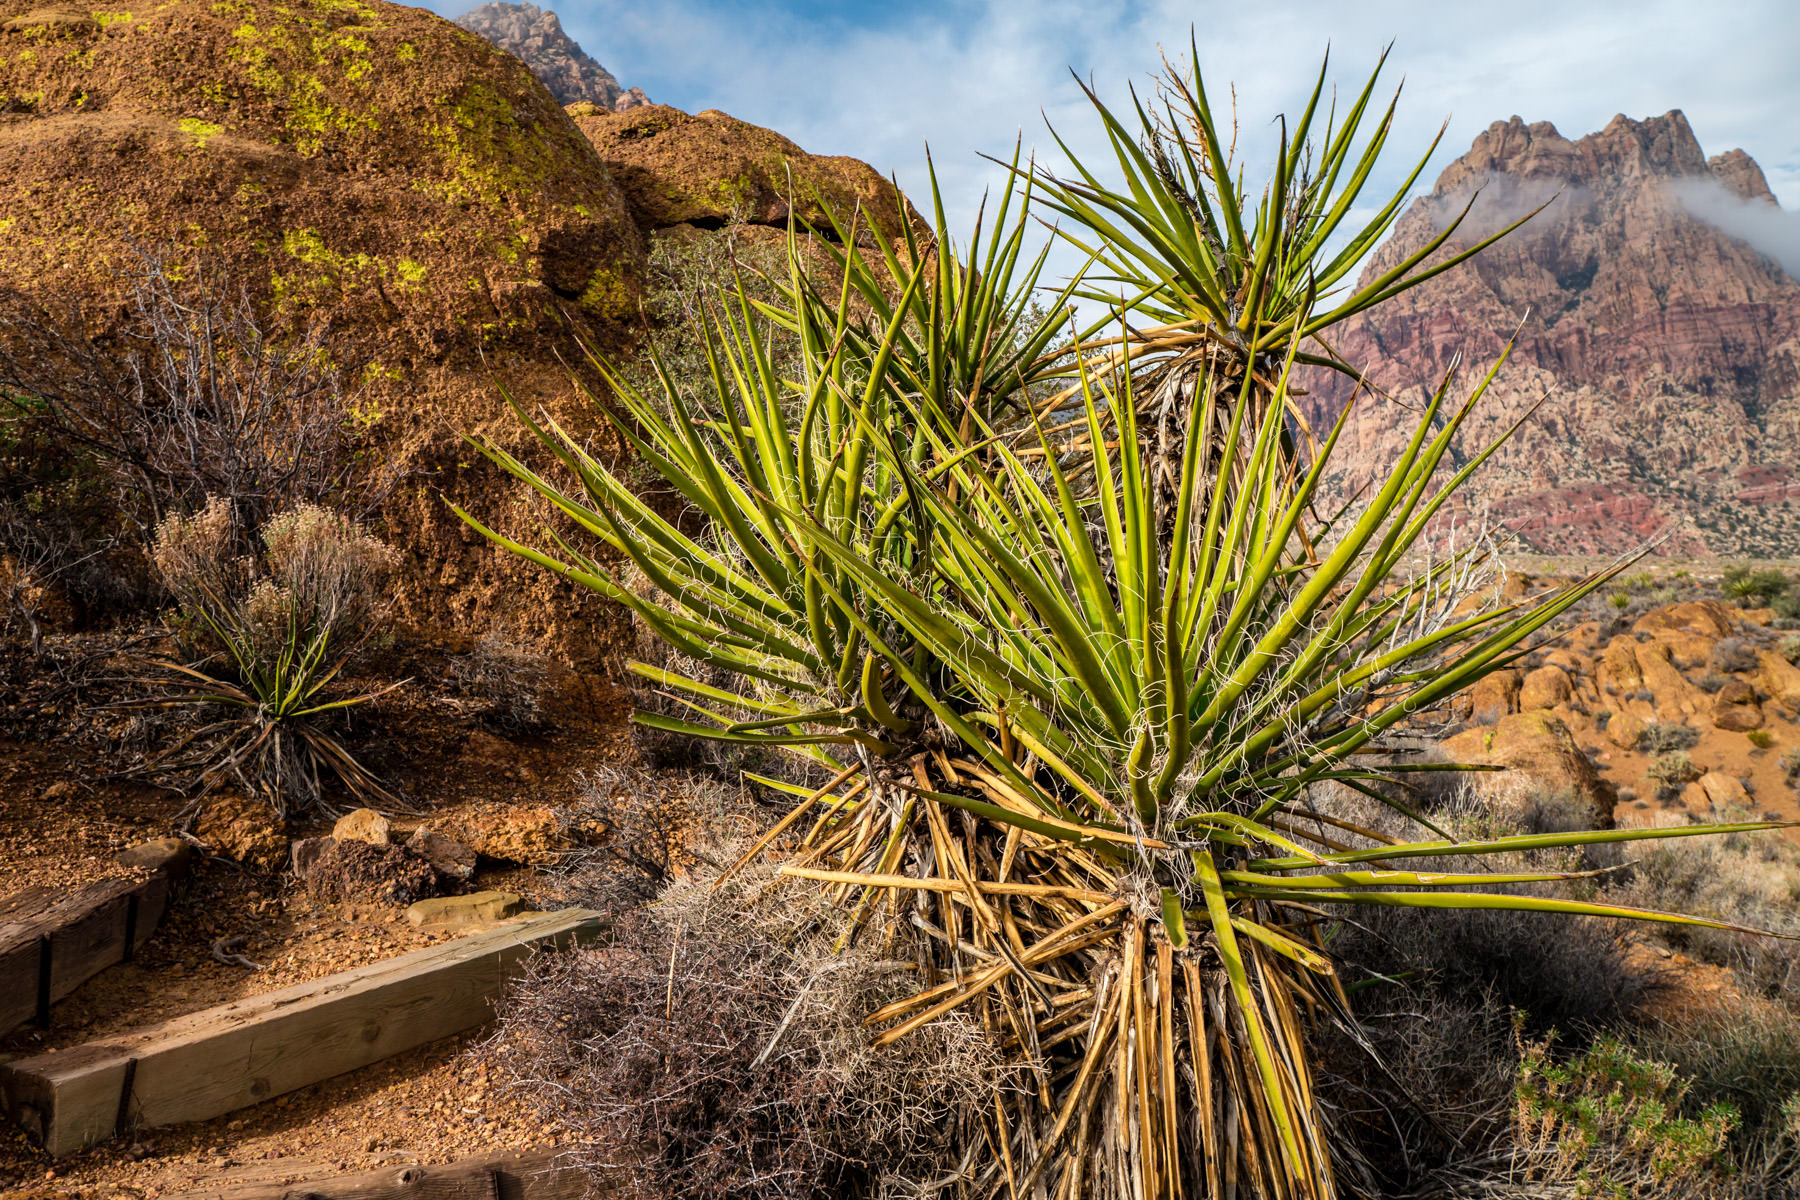 Yucca plants grow in the desert at Spring Mountain Ranch near Las Vegas, Nevada.